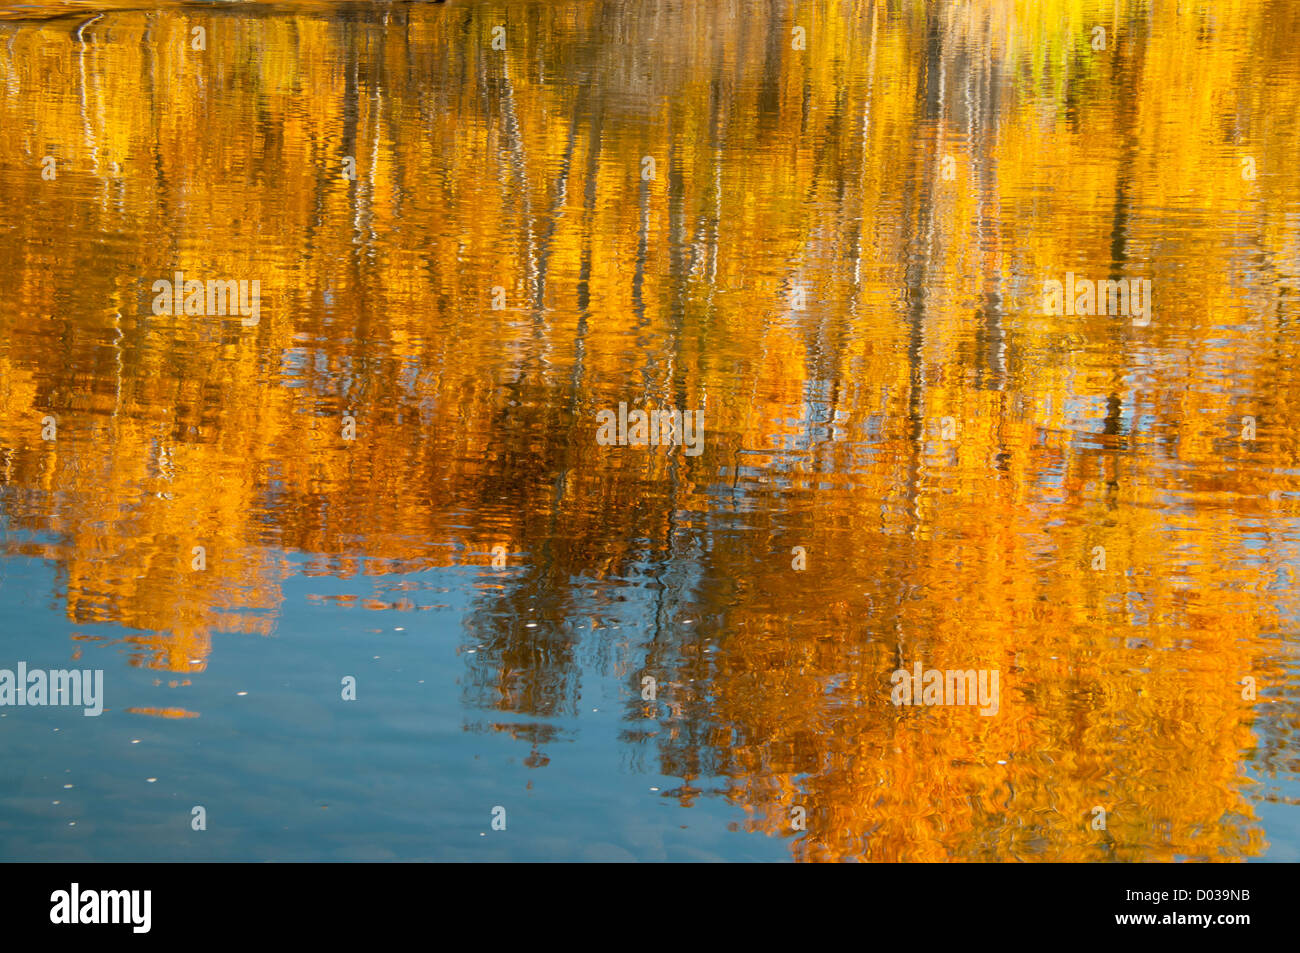 Scenic autumn water reflections of golden cottonwood trees in the boise river along the boise river greenbelt. Boise - Stock Image